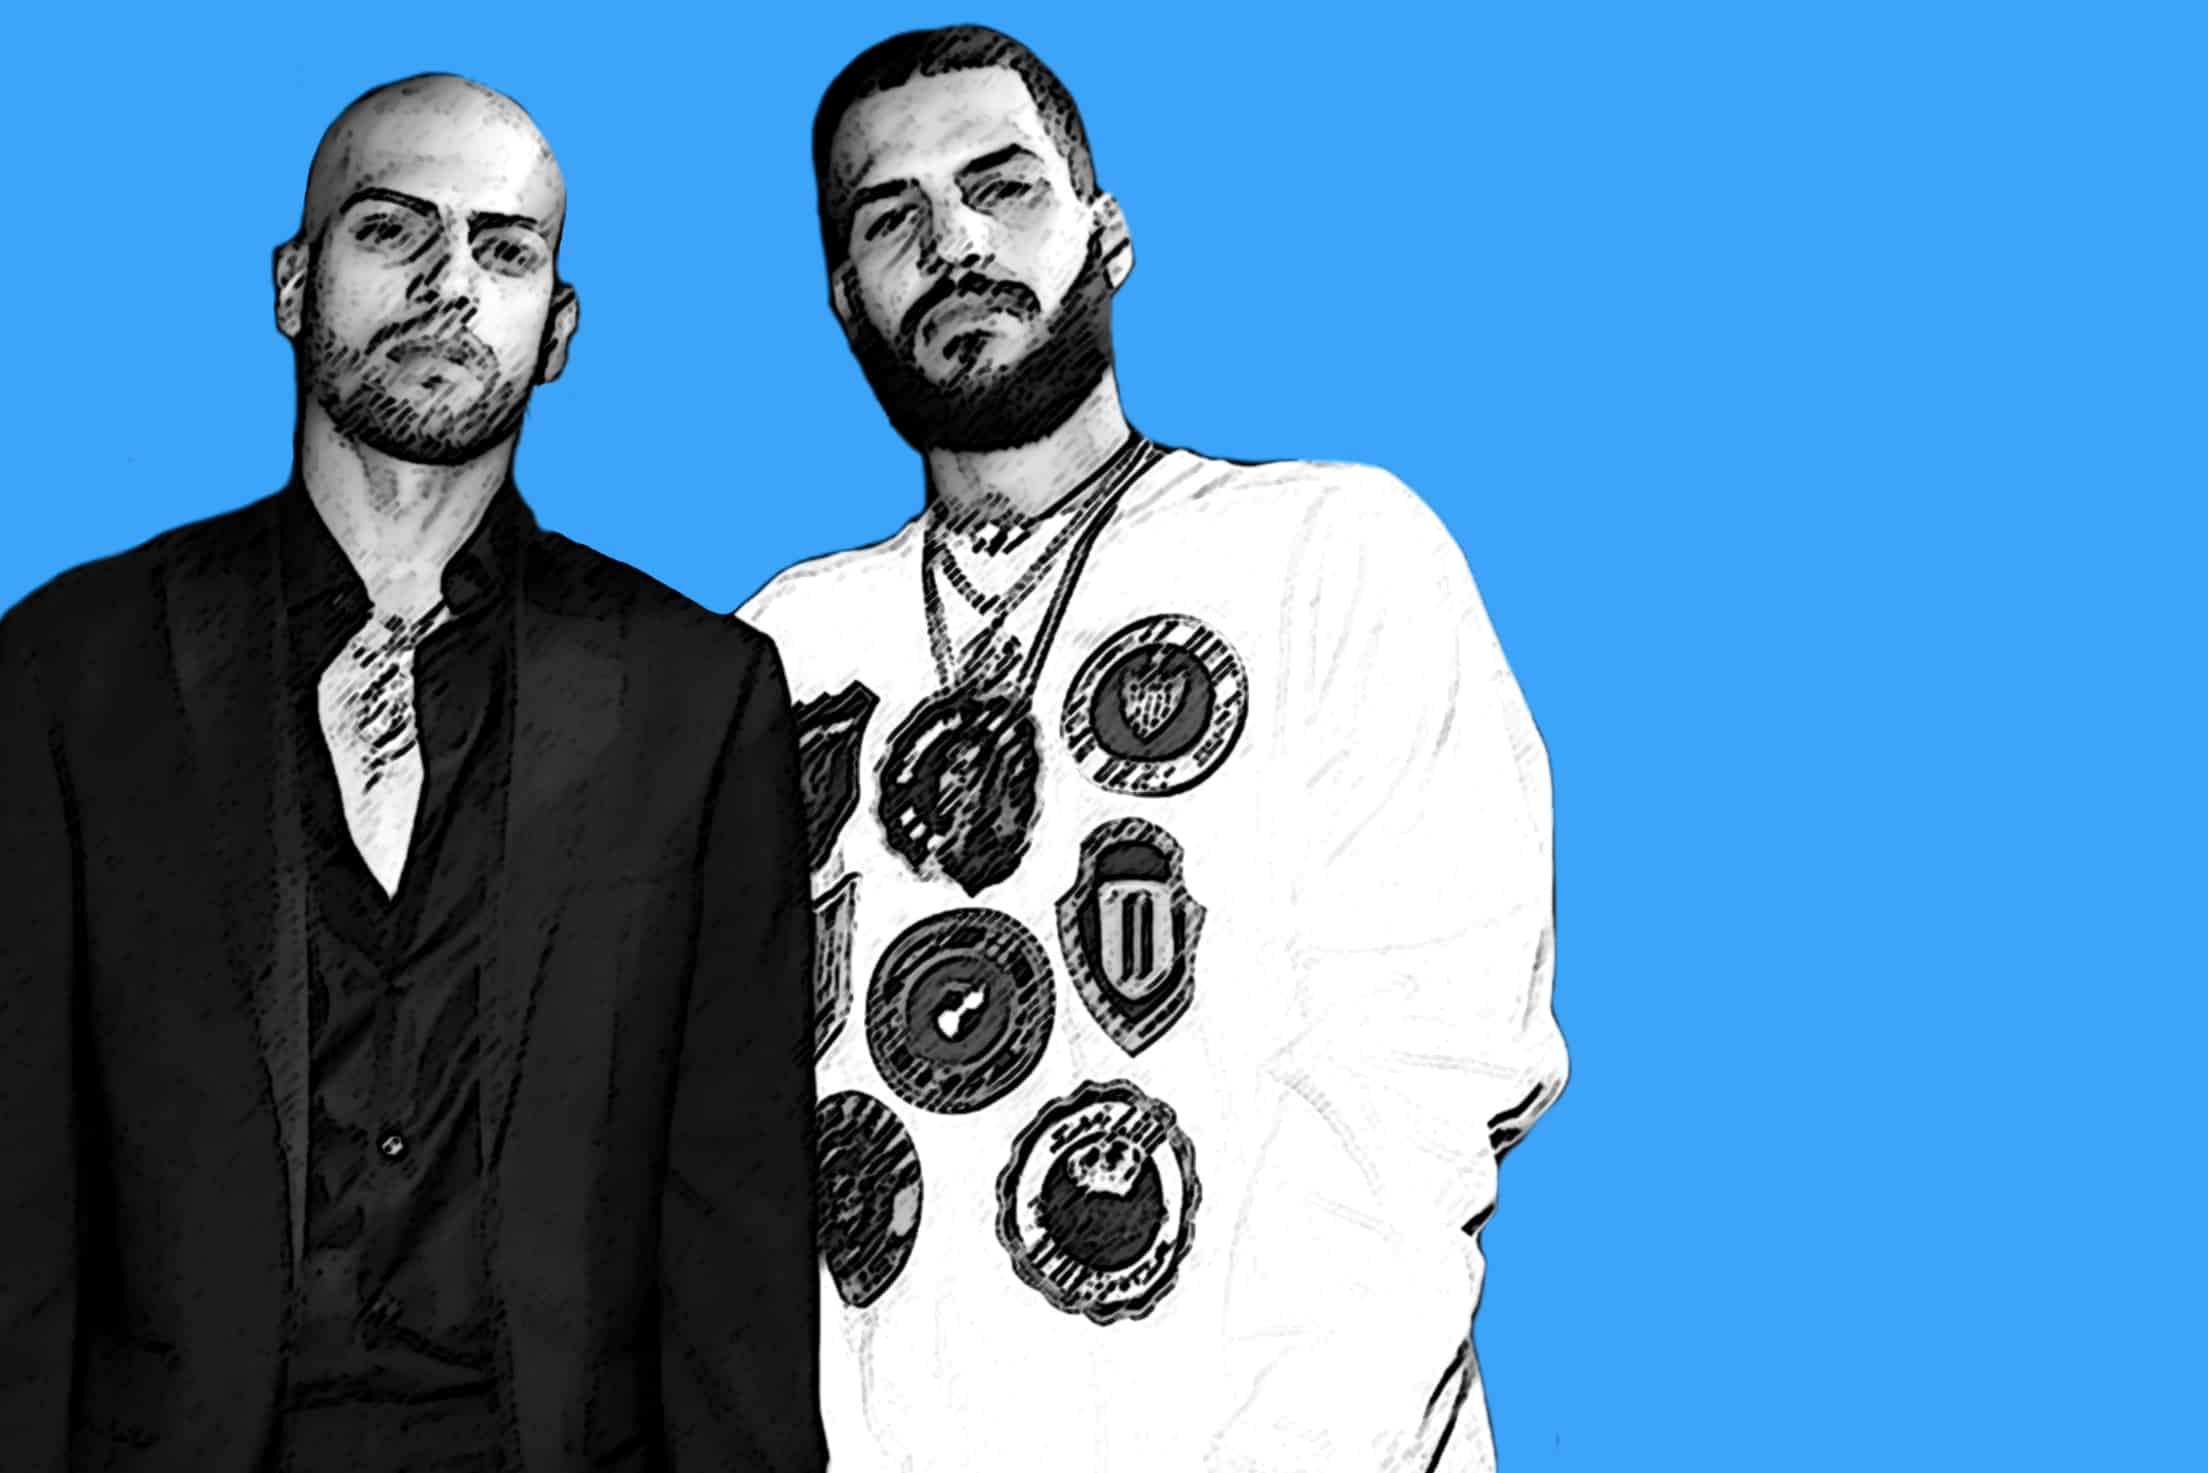 THE MARTINEZ BROTHERS – MUSIC'S NEW GUARD